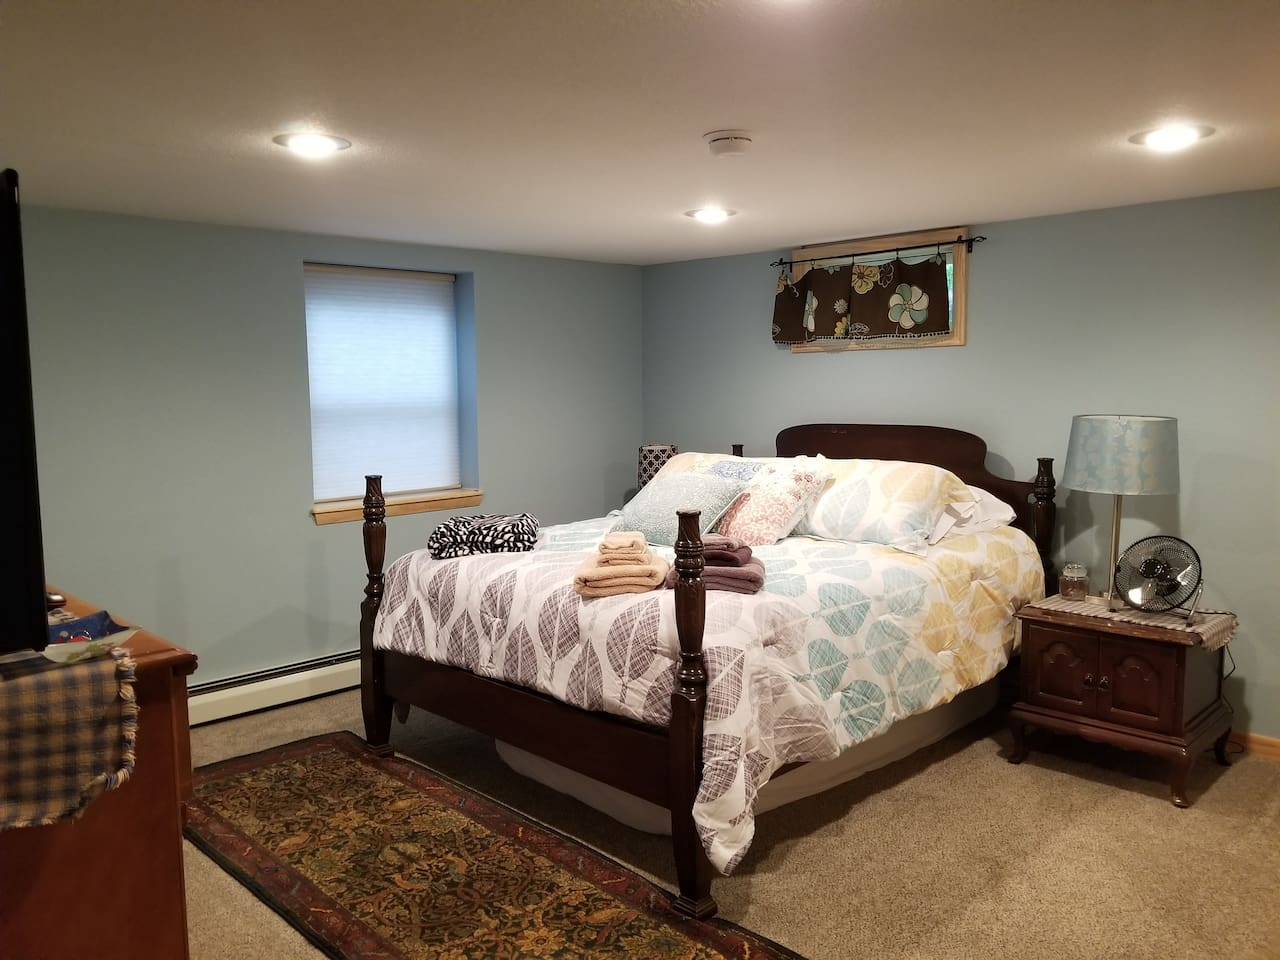 Moderately firm Queen size mattress with waterproof mattress toppers. Mattress designed by a chiropractor. A pullout very comfortable twin size floor mattress available if needed. Just let us know.